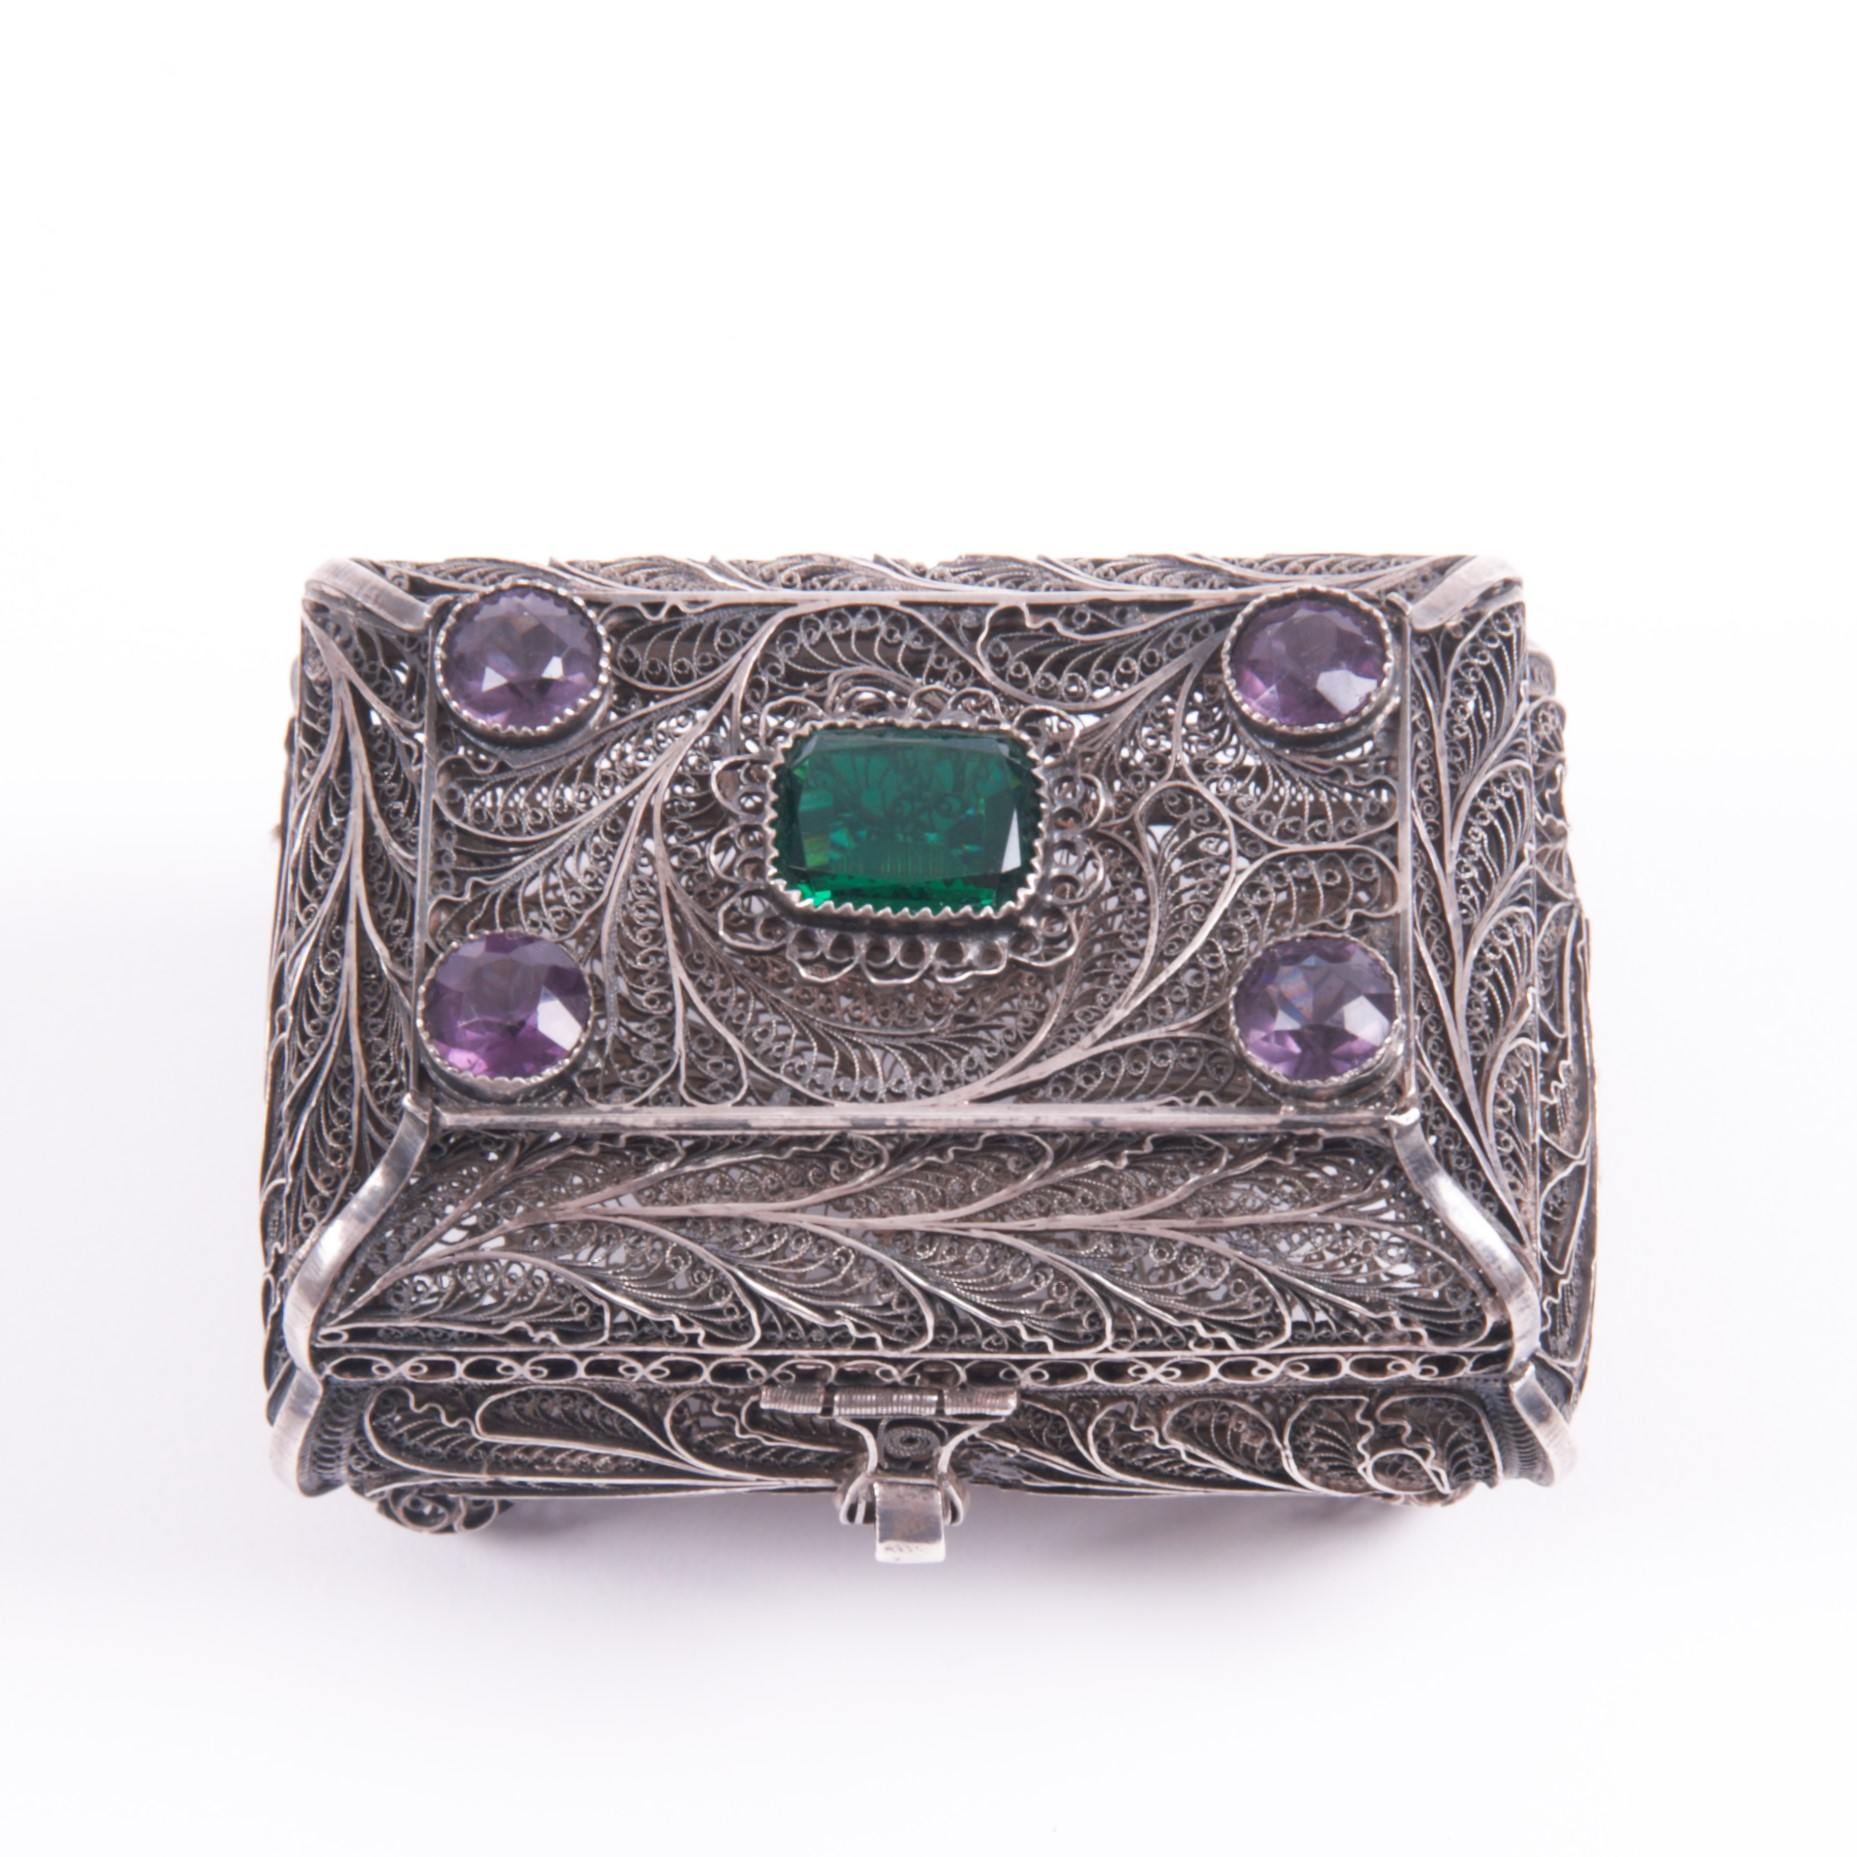 Russian Silver Filigree Box